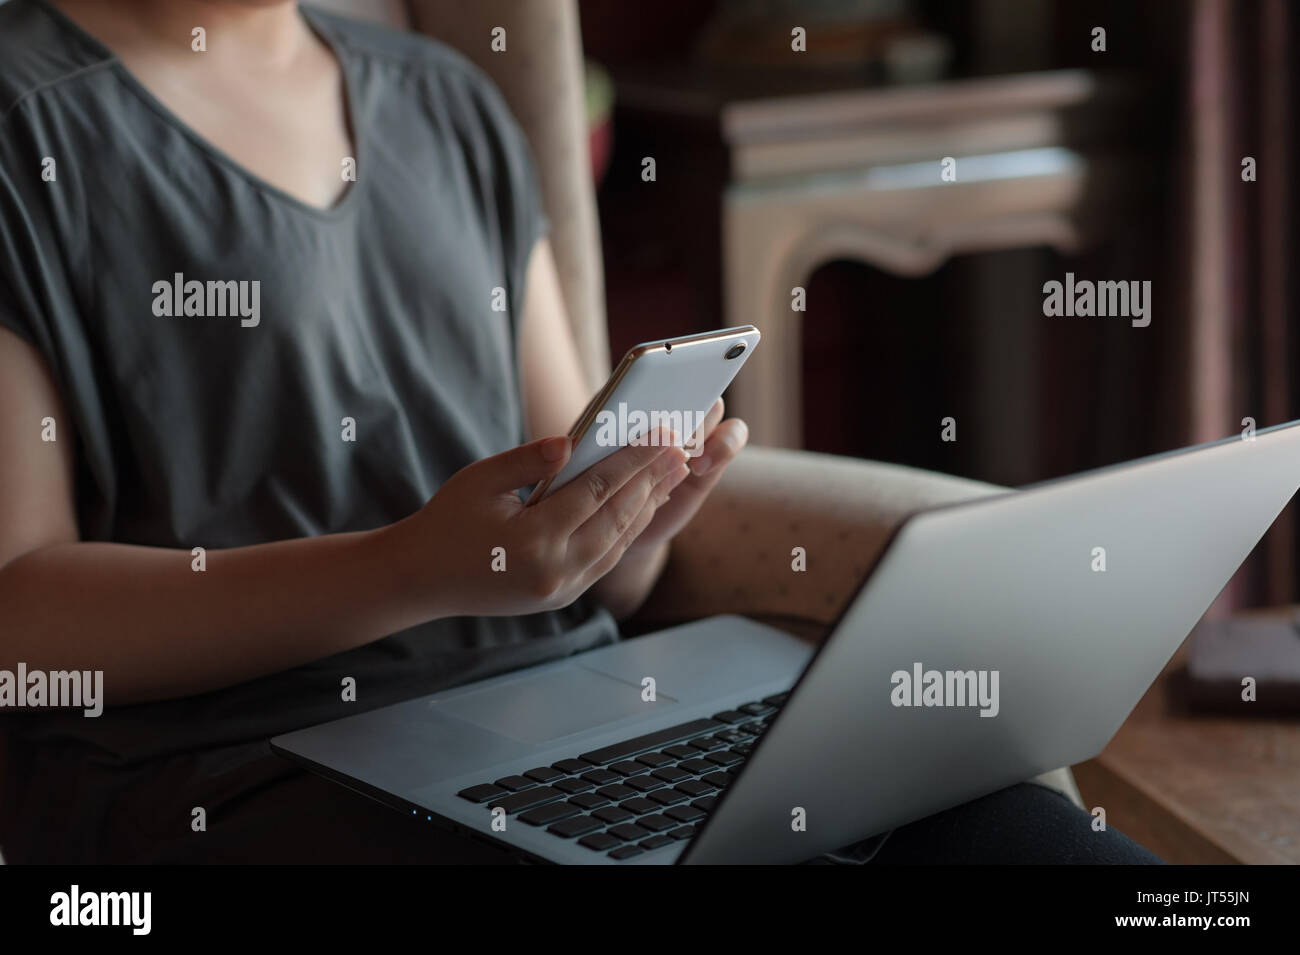 Woman freelancer using smartphone for social network while working with laptop computer. Online business and self-employed concept - Stock Image